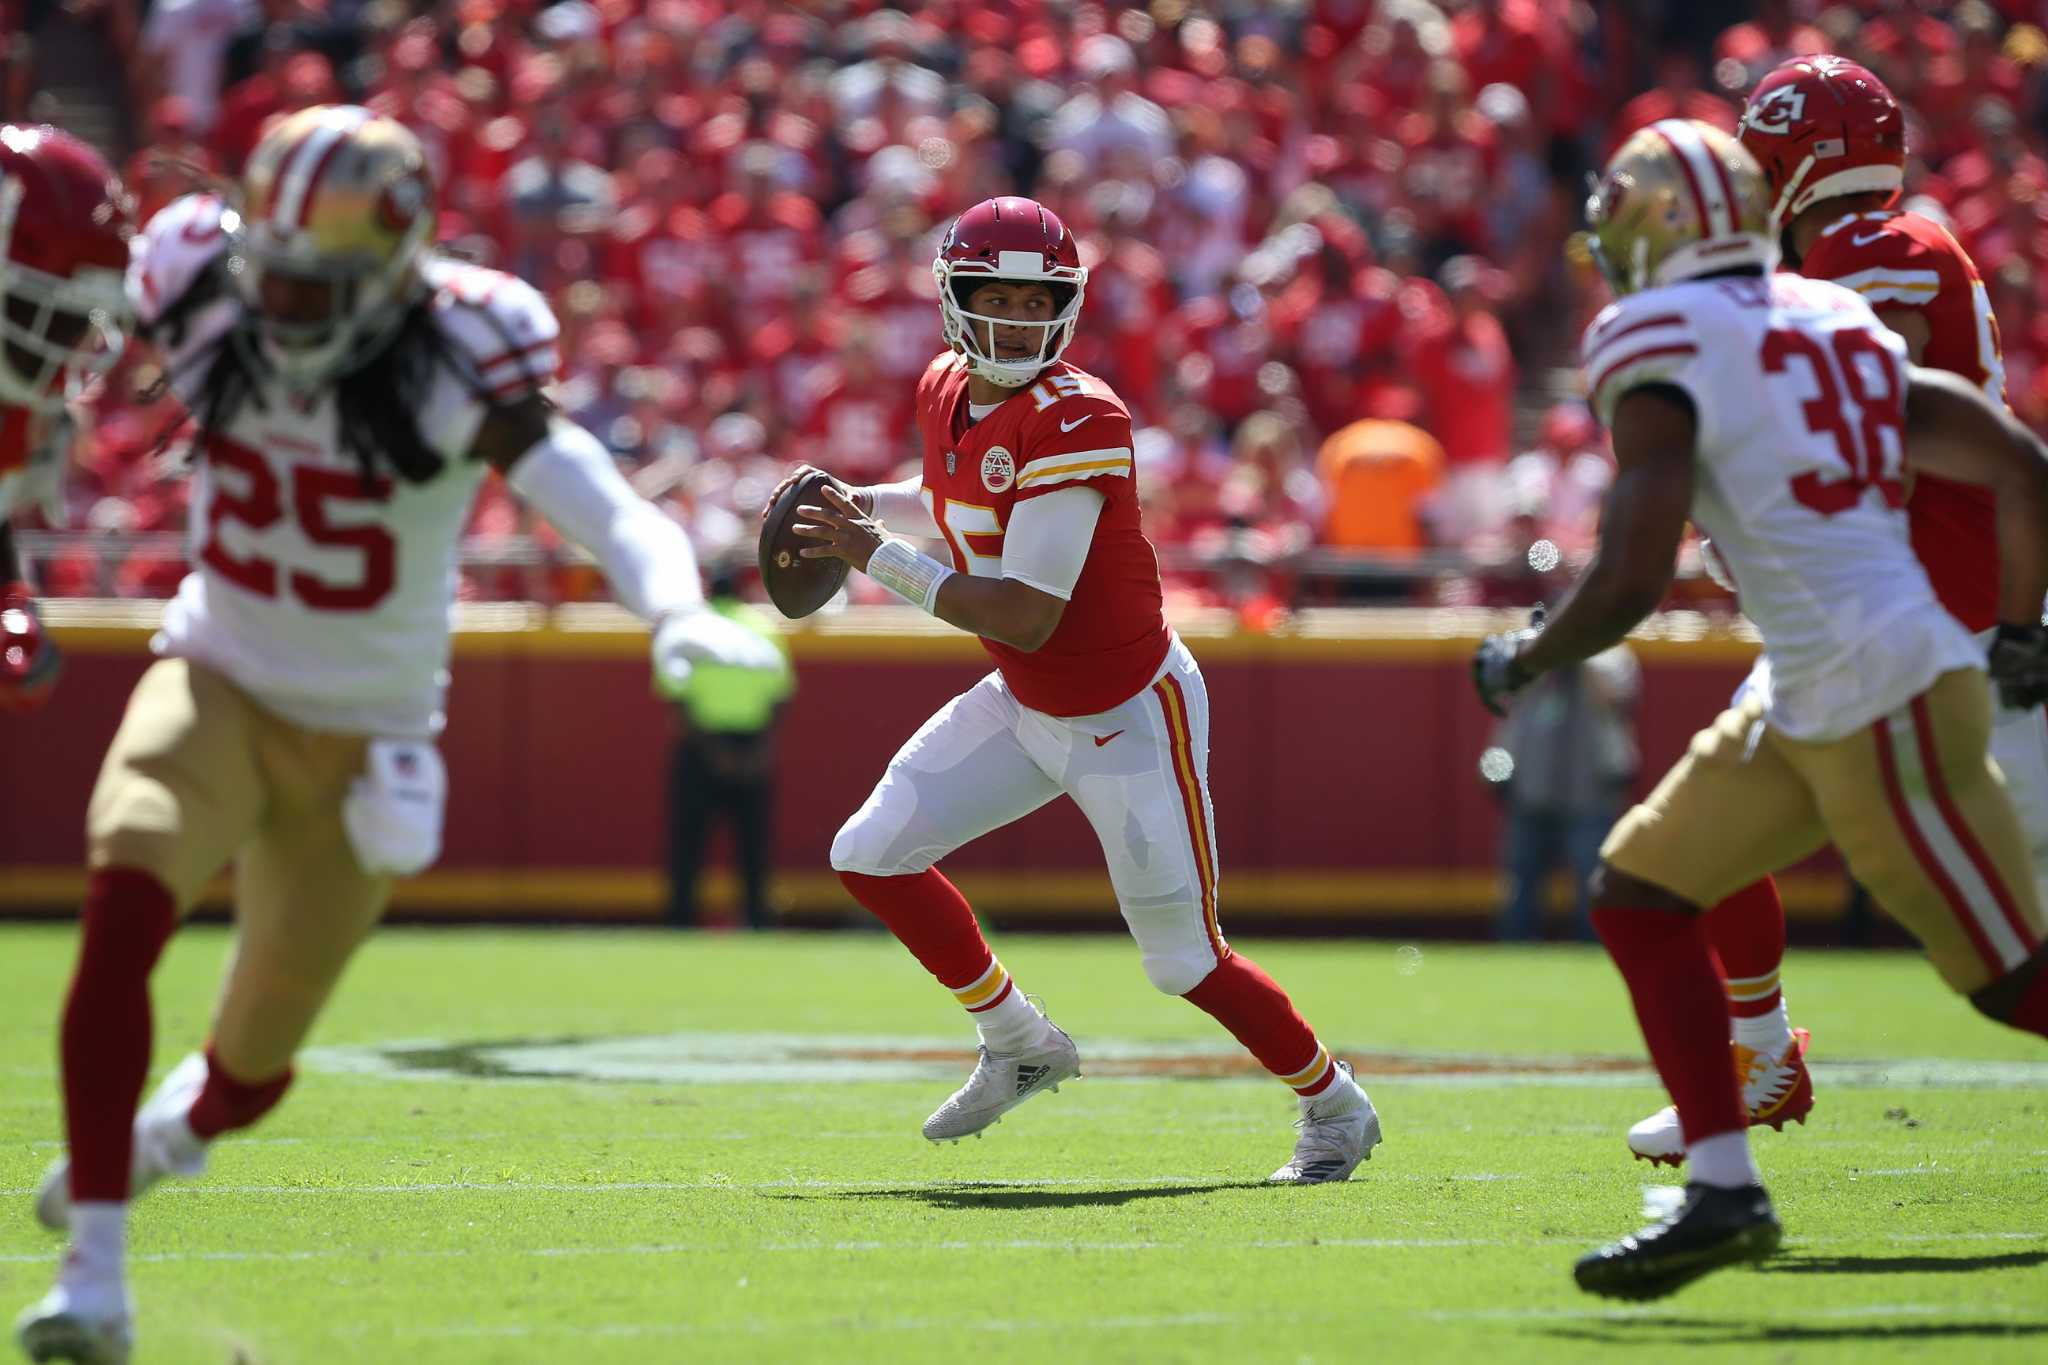 Super Bowl preview, 49ers vs. Chiefs: Can SF stop Patrick Mahomes? - SFChronicle.com